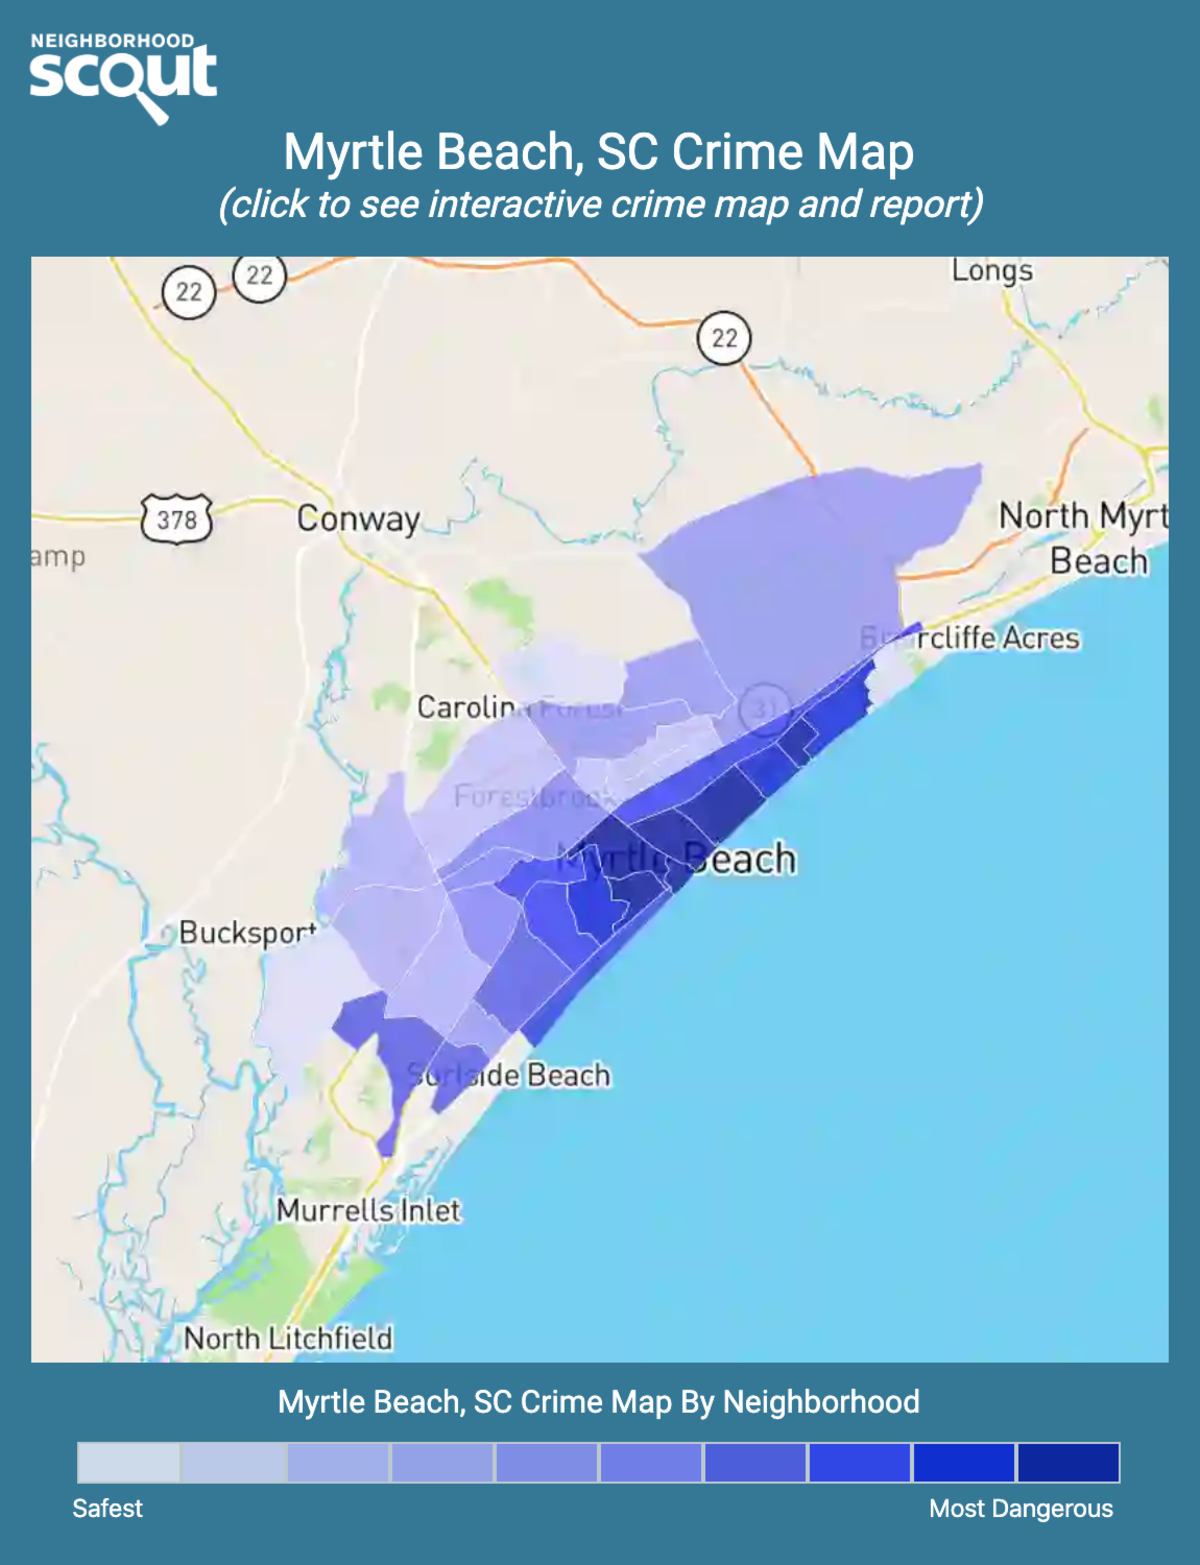 Myrtle Beach, South Carolina crime map